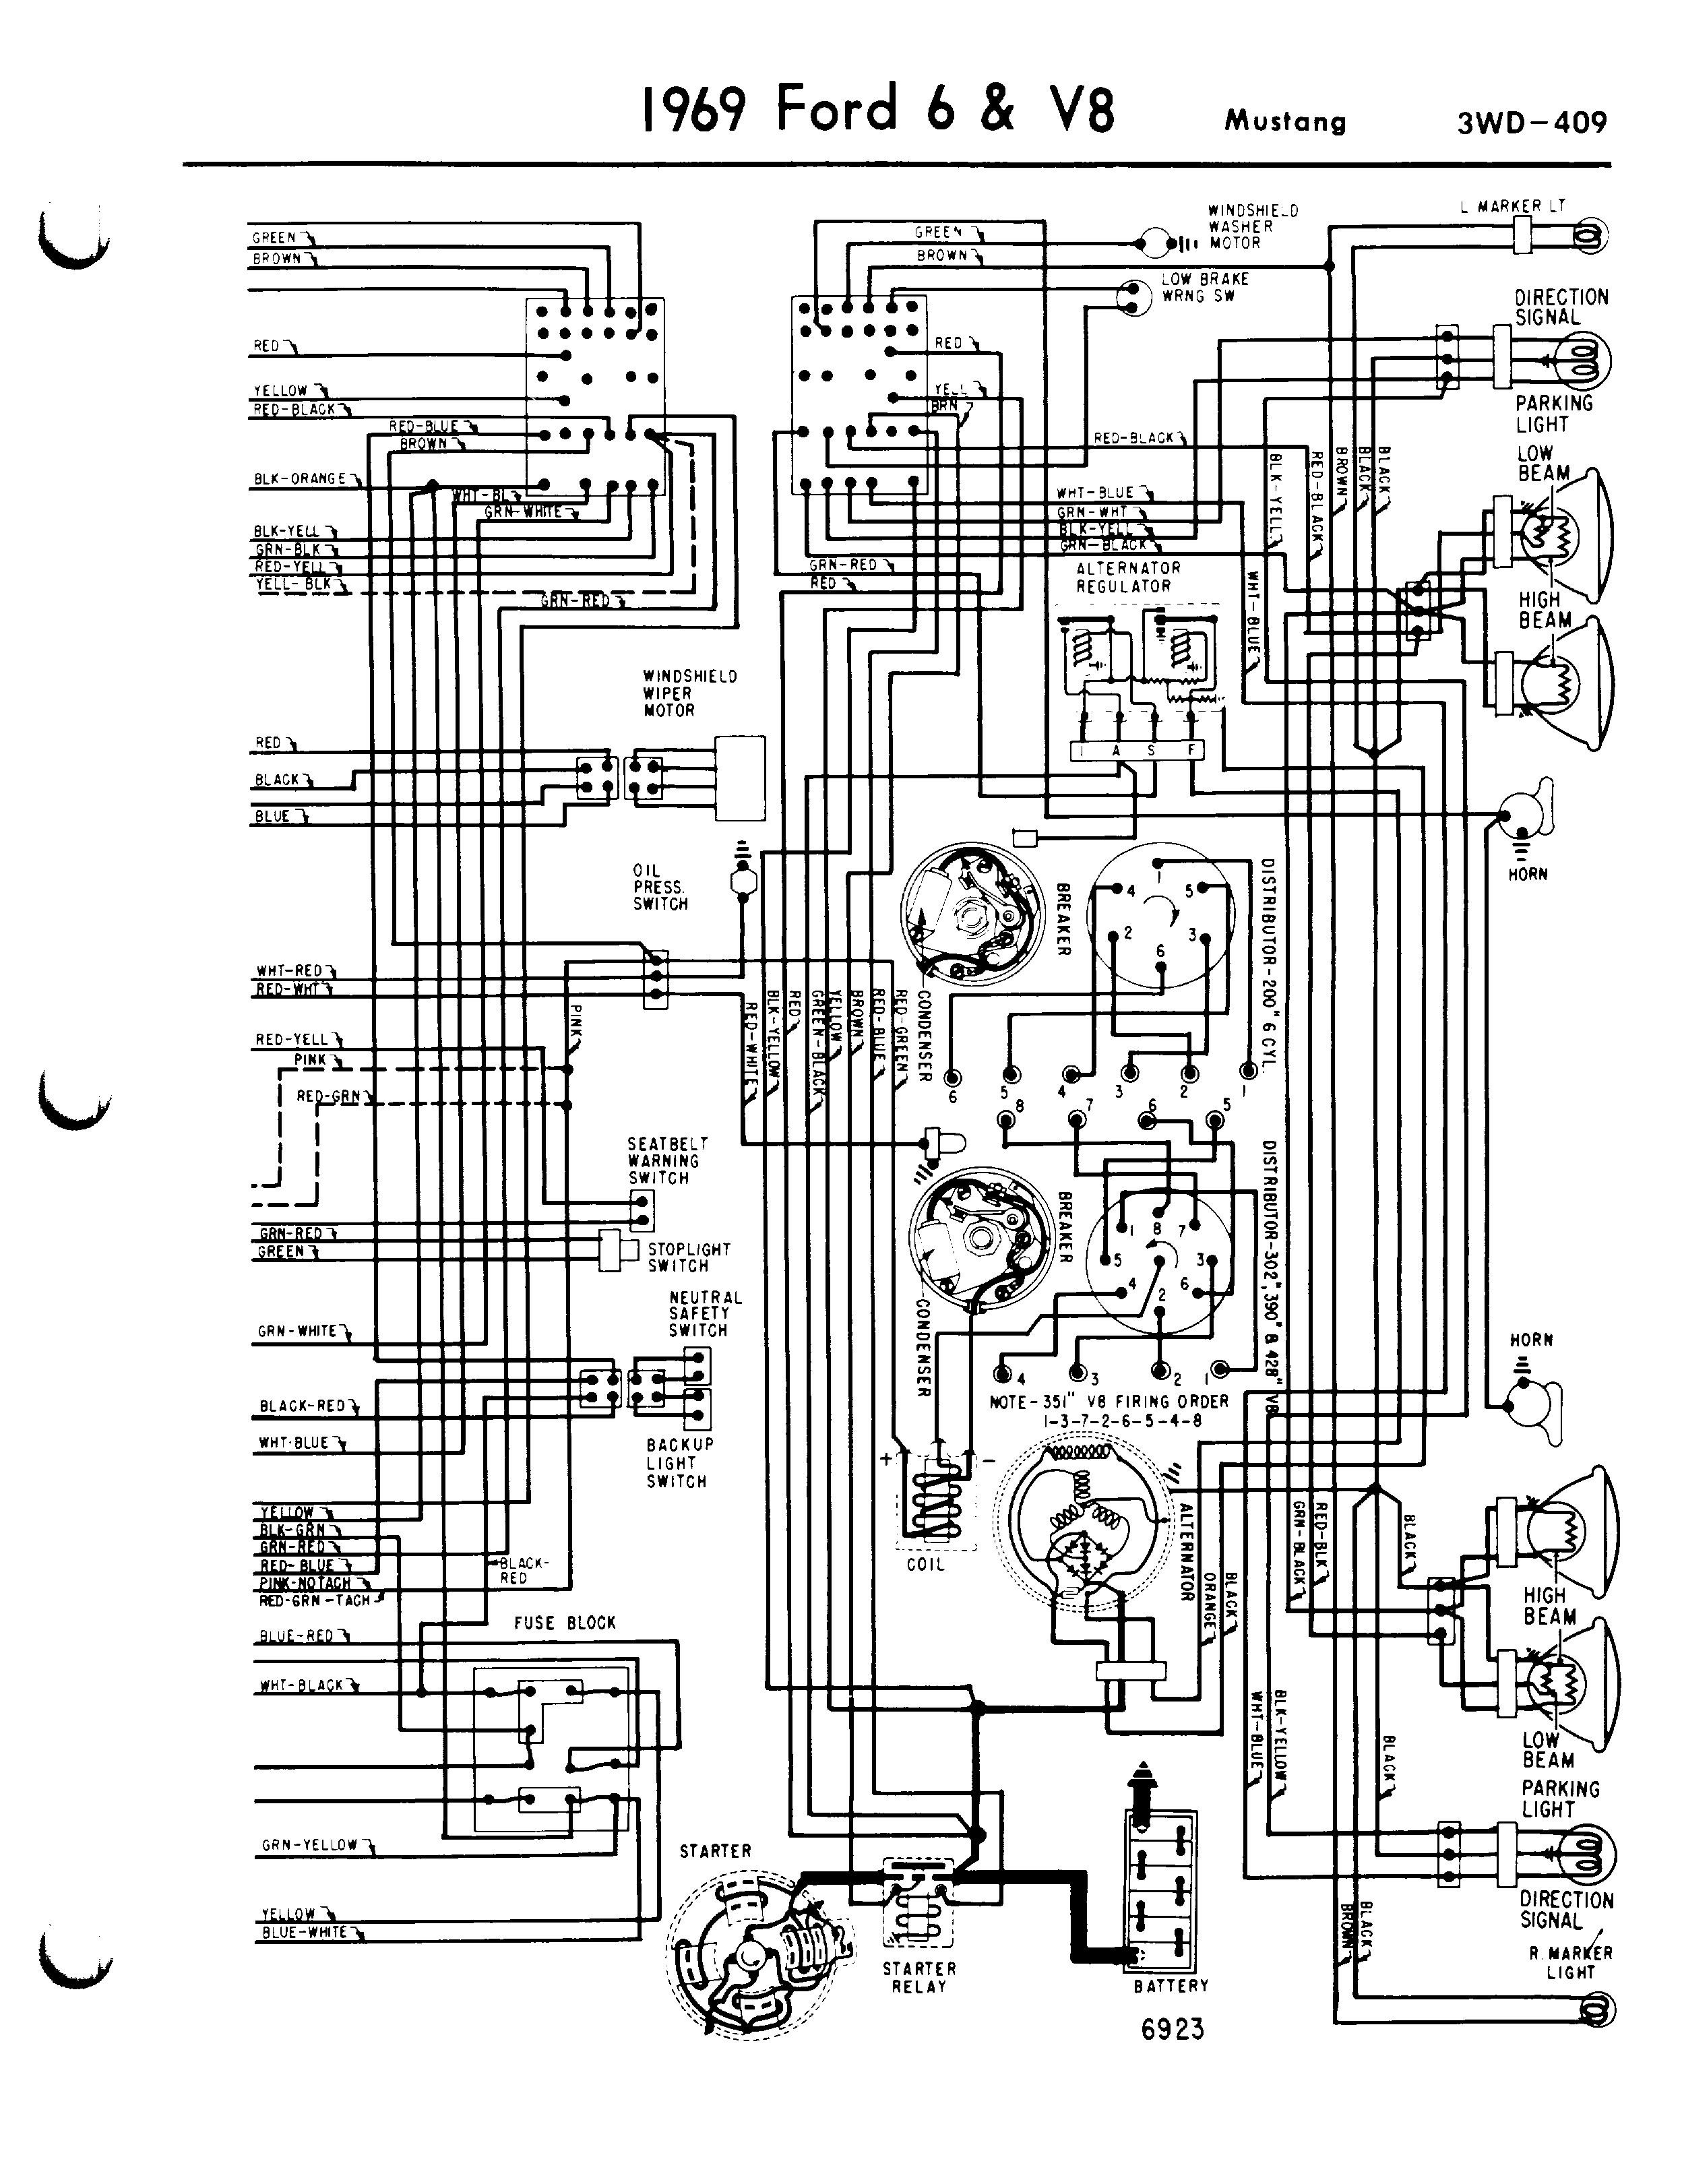 Ignition Coil Wiring Diagram Ford Mustang Alternator 1964 Diagrams Auto Today U2022 Rh Bigrecharge Co